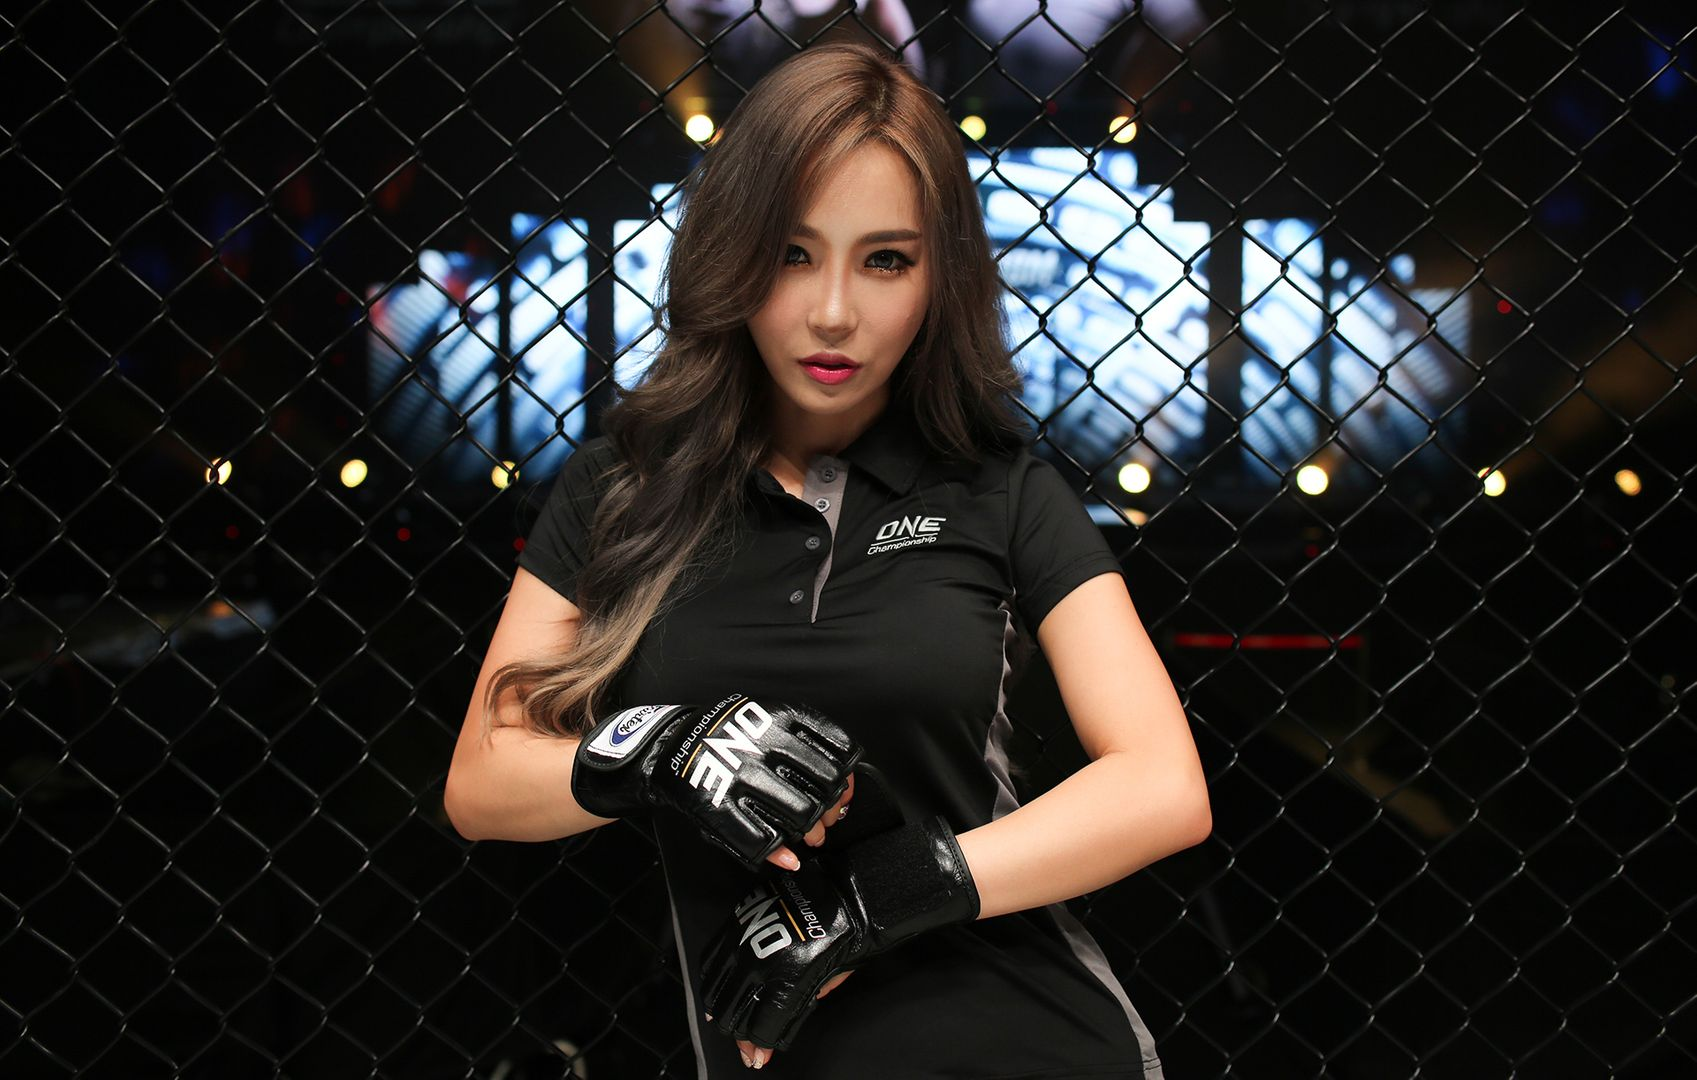 ONE Championship ring girl DJ Jina wears a ONE shirt and wears mixed martial arts gloves